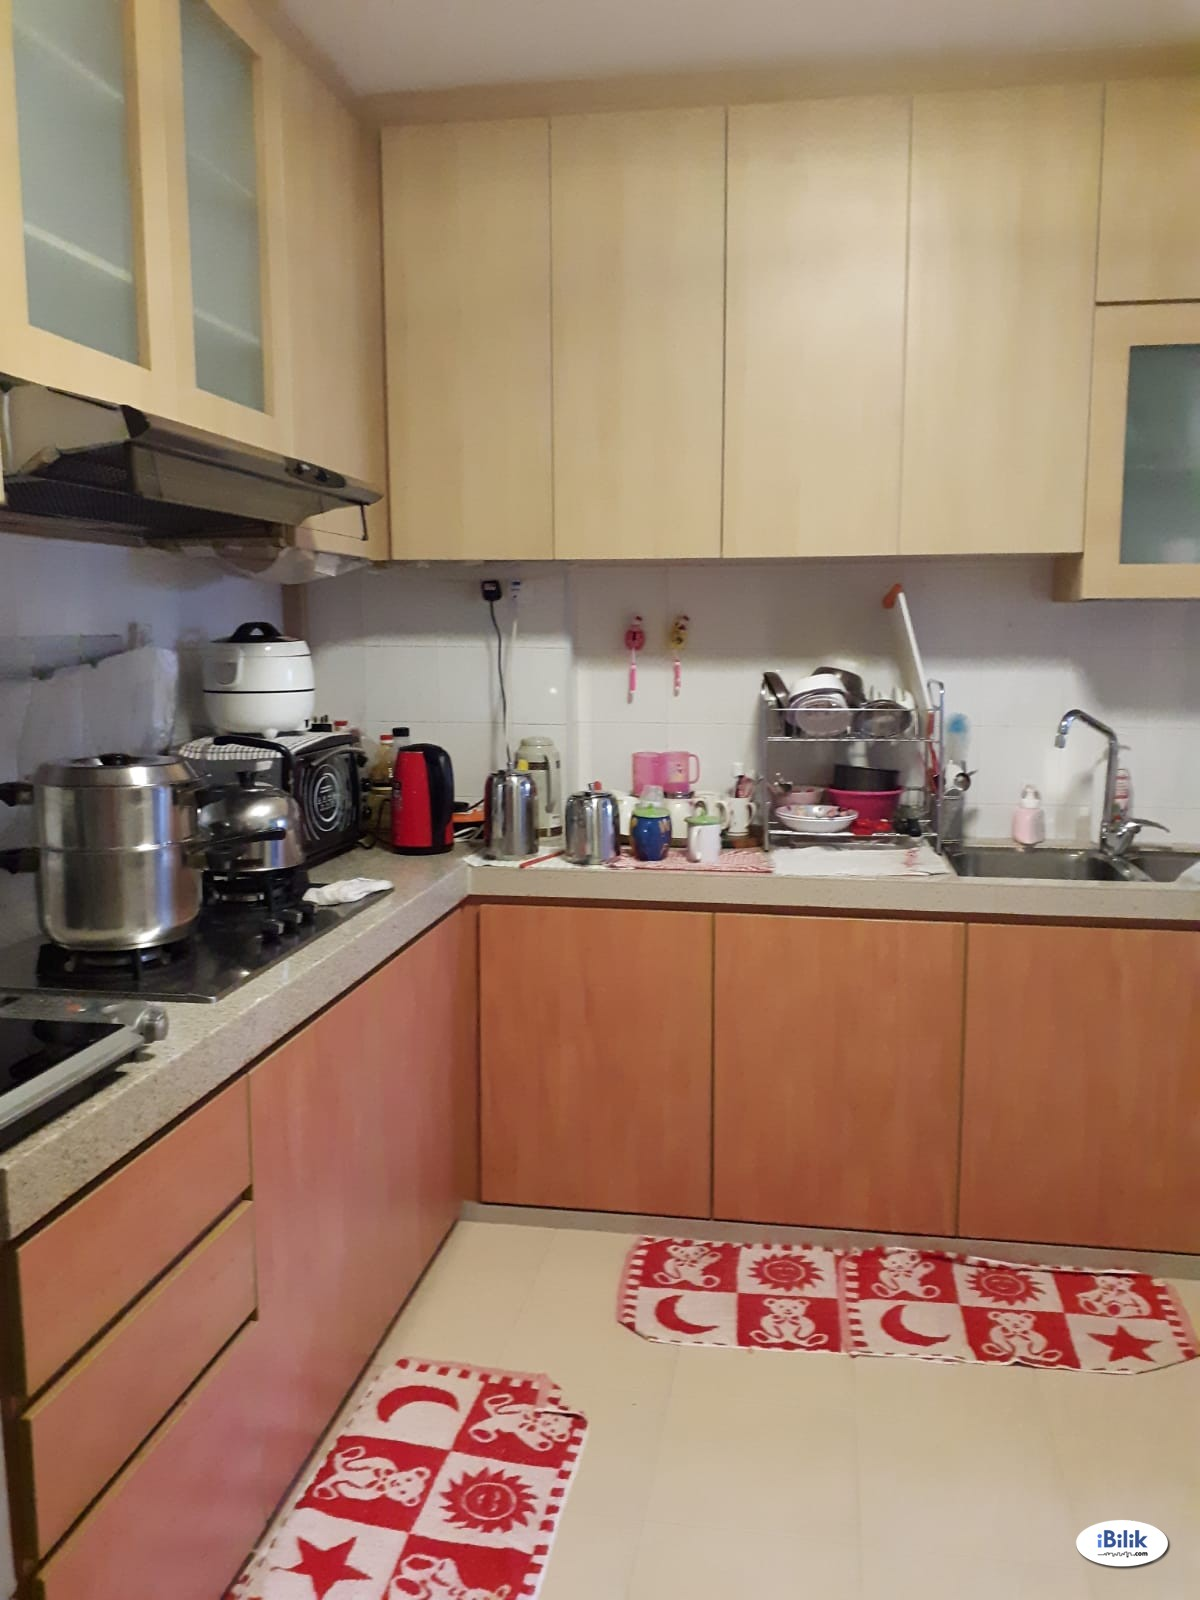 Blk 288B jurong east st21 common rm for single female (nr mrt)